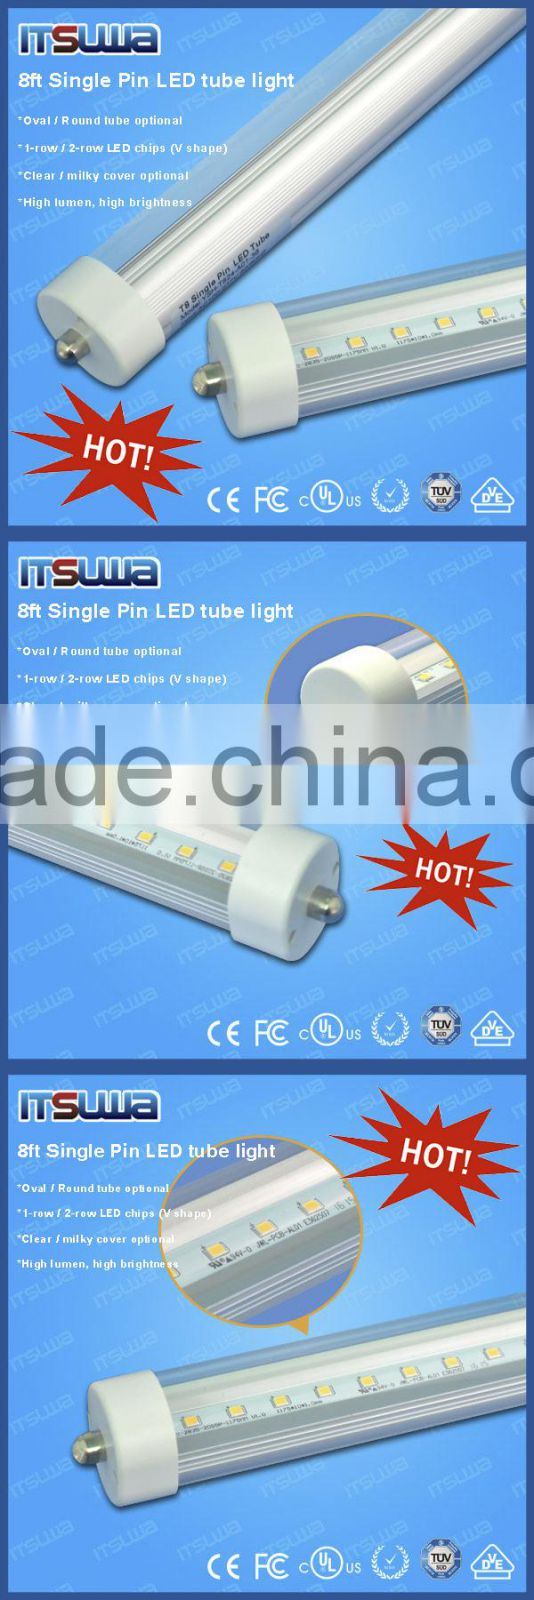 6063 Aluminium Led Lamp Housing Pc Cover 8foot Tube With Single Light Circuit Epistar Chips T8 China Pin